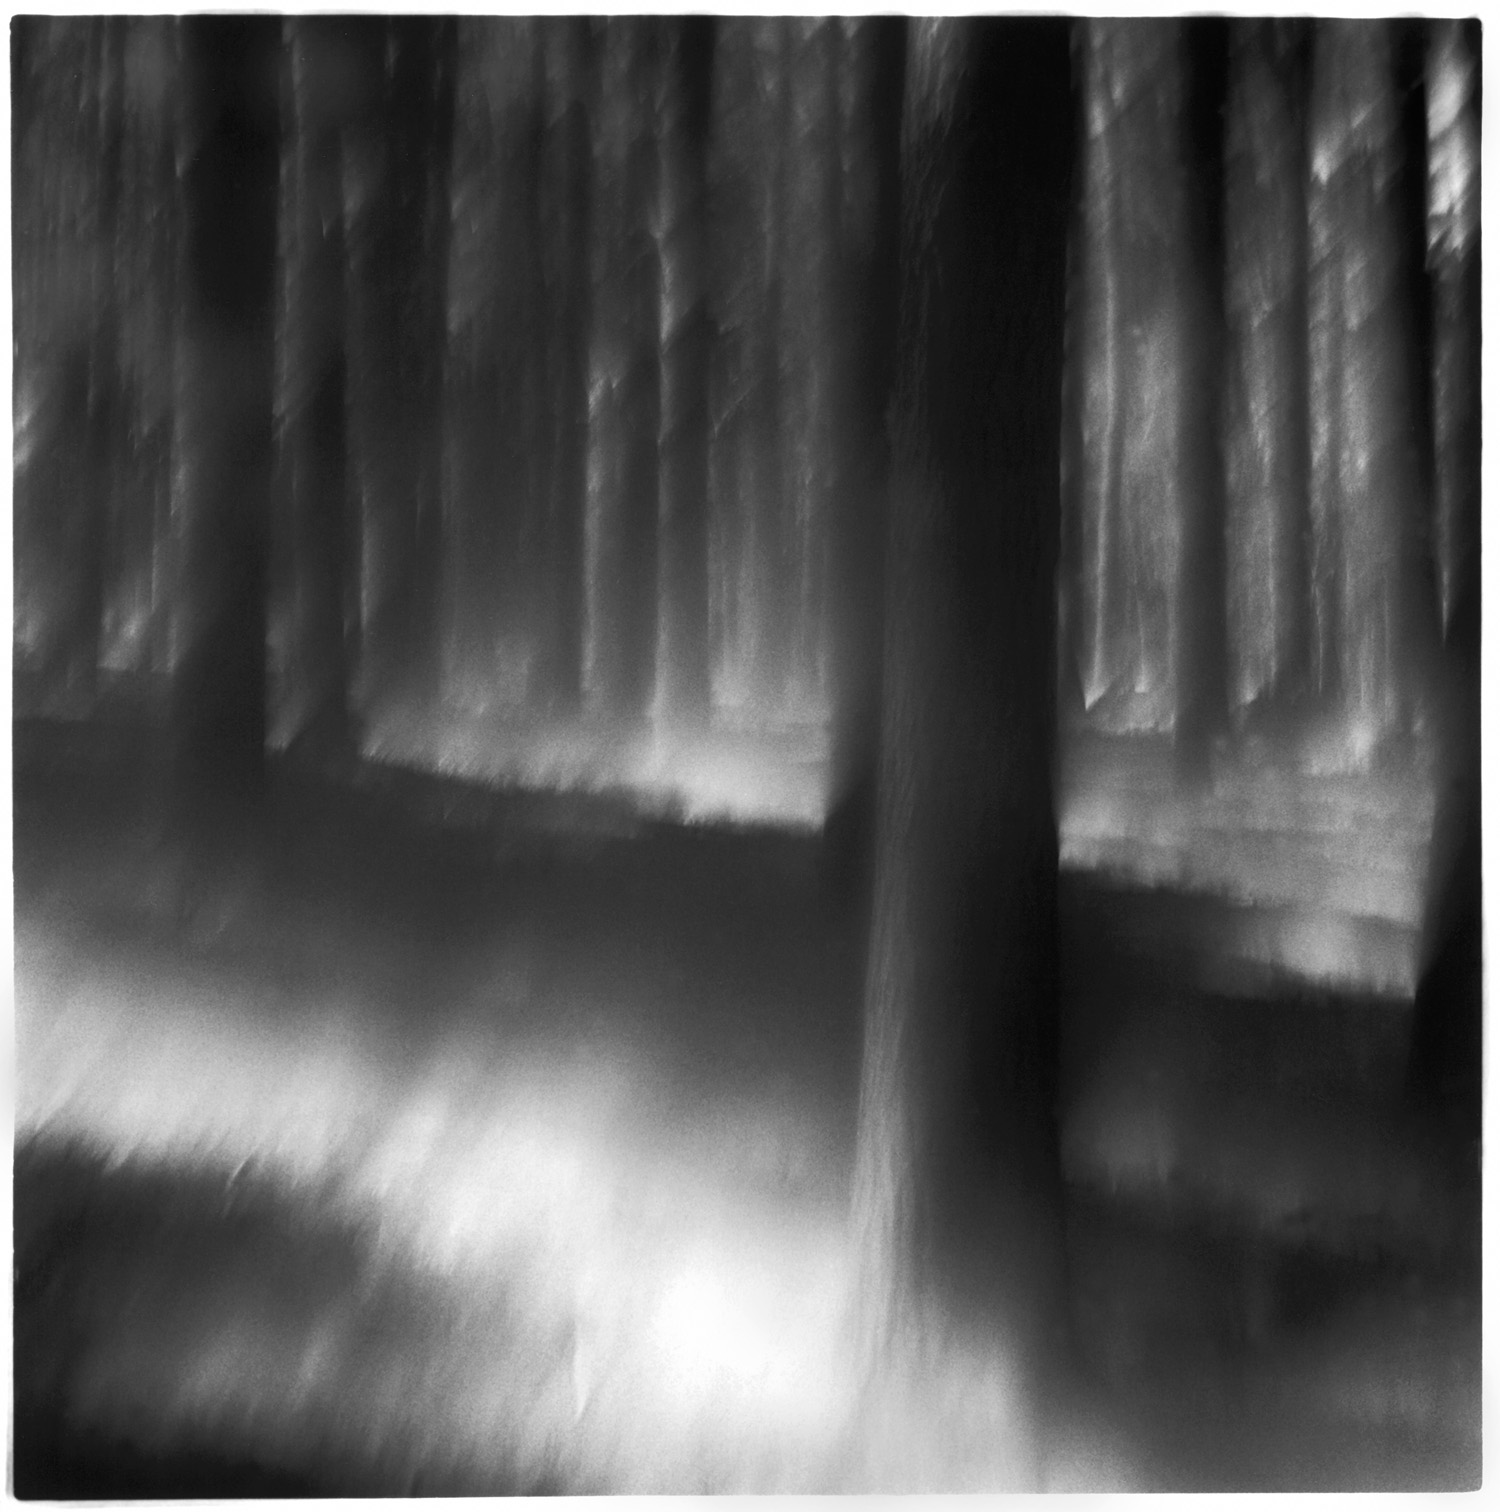 LIGHT IN THE FOREST, web.jpg